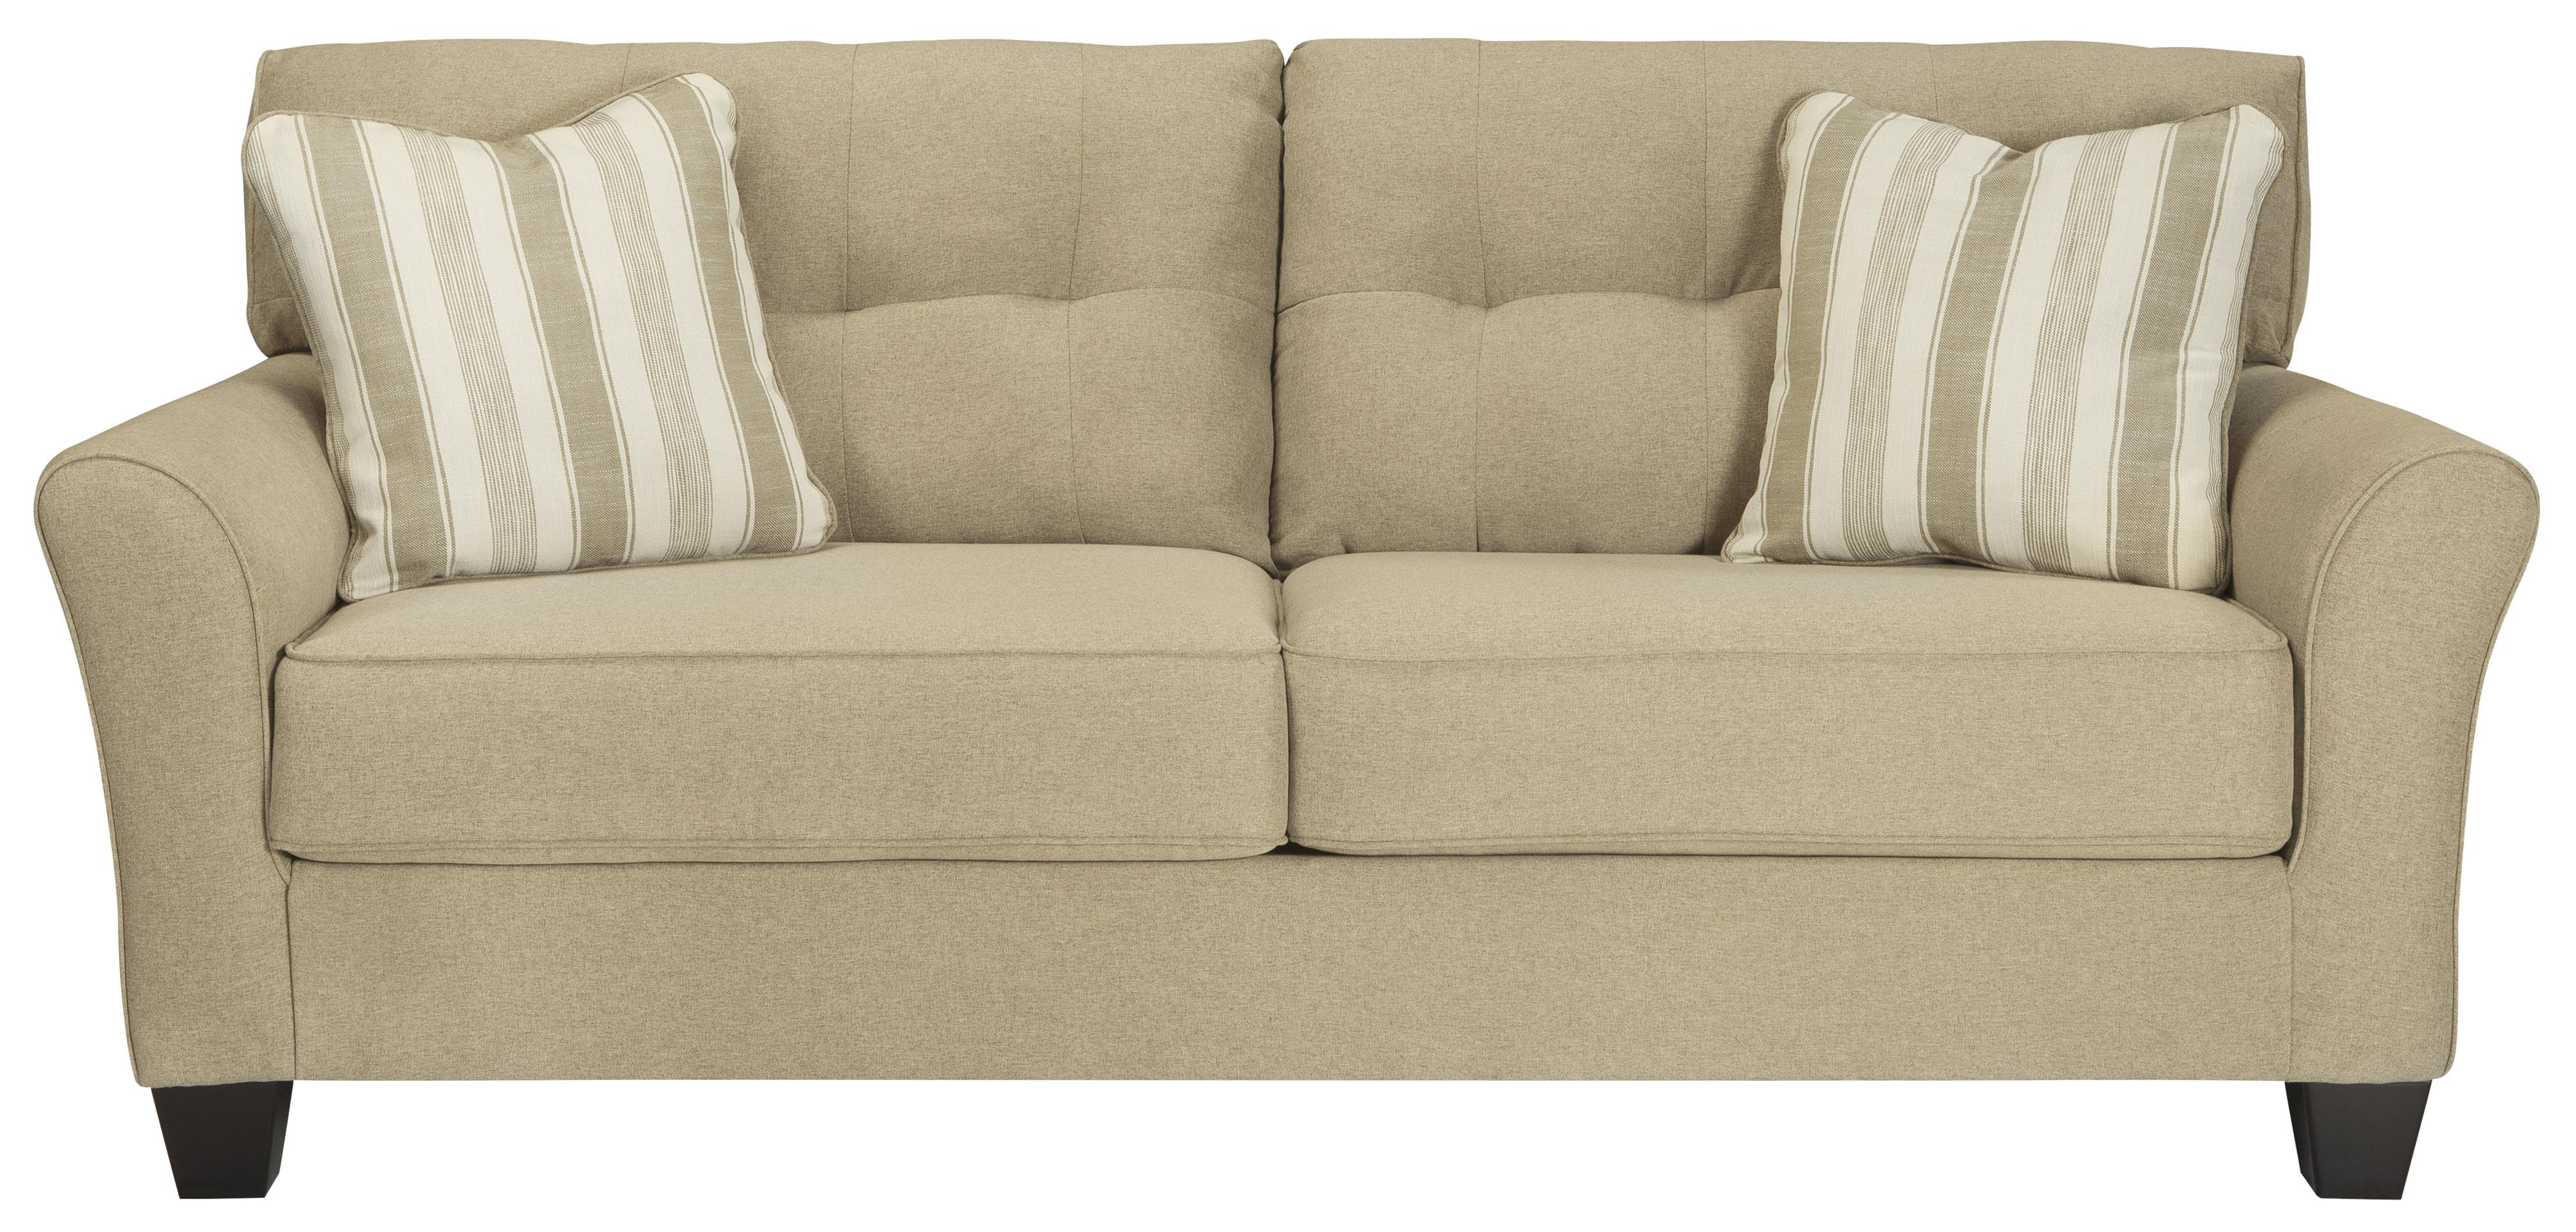 Benchcraft Laryn Queen Sofa Sleeper - Item Number: 5190239